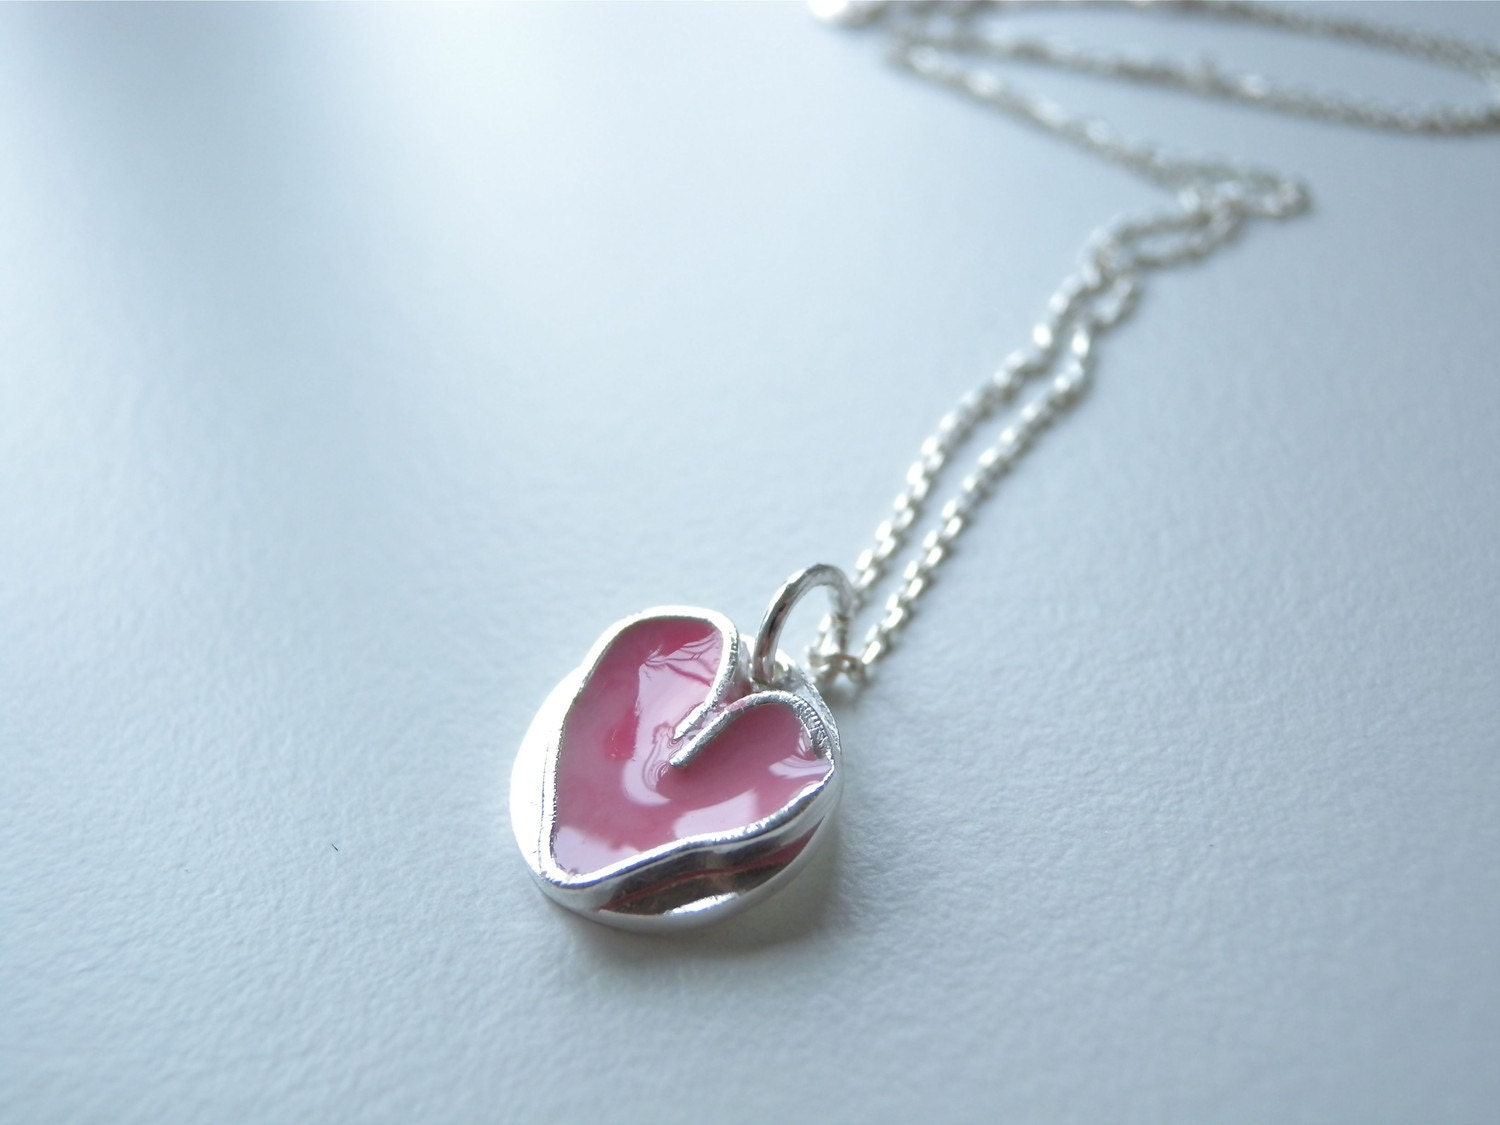 Pink Heart Necklace in Silver and Enamel